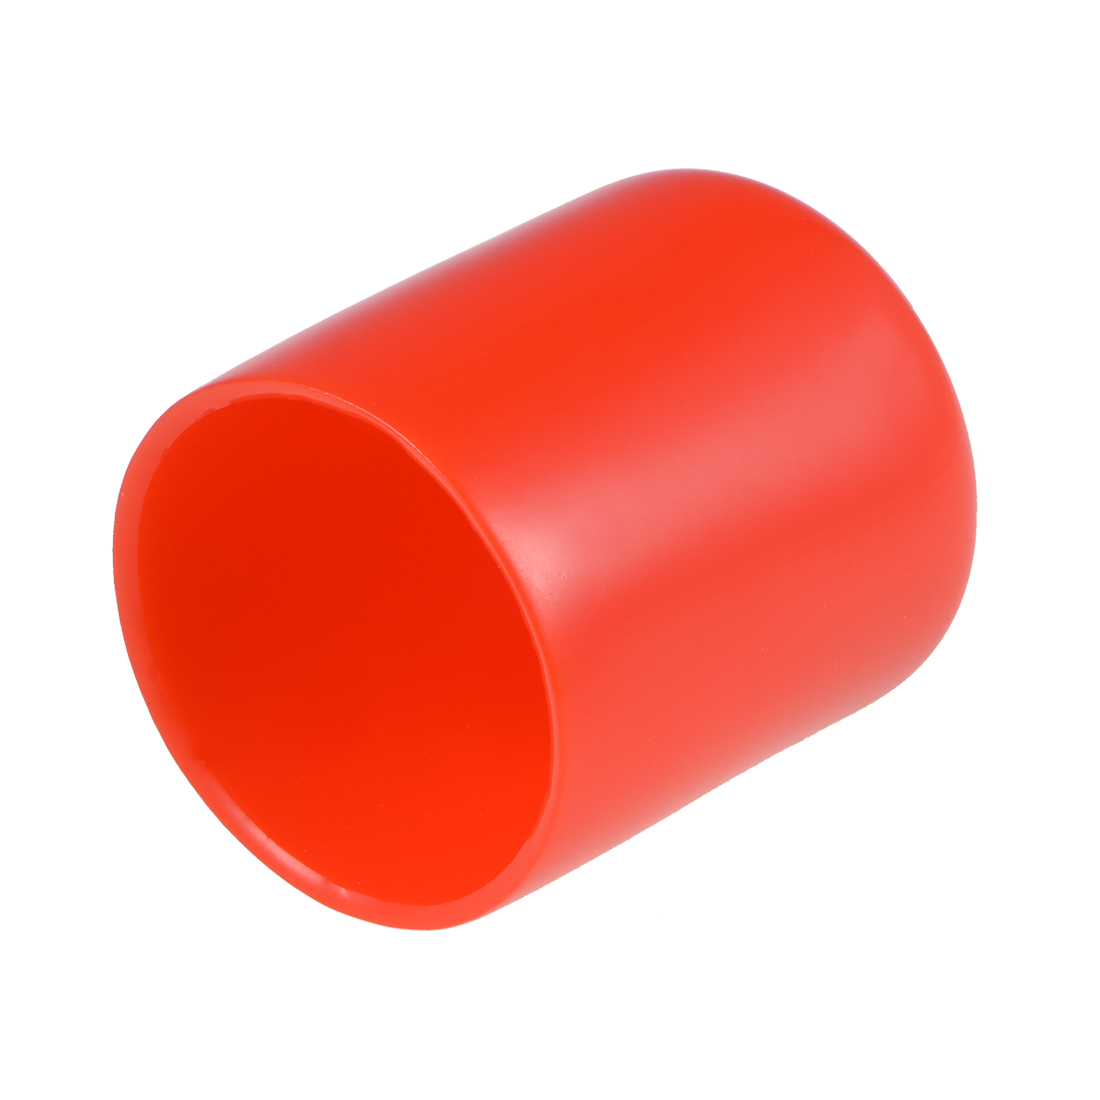 Screw Thread Protector, 30mm ID Round End Cap Cover Red Tube Caps 10pcs